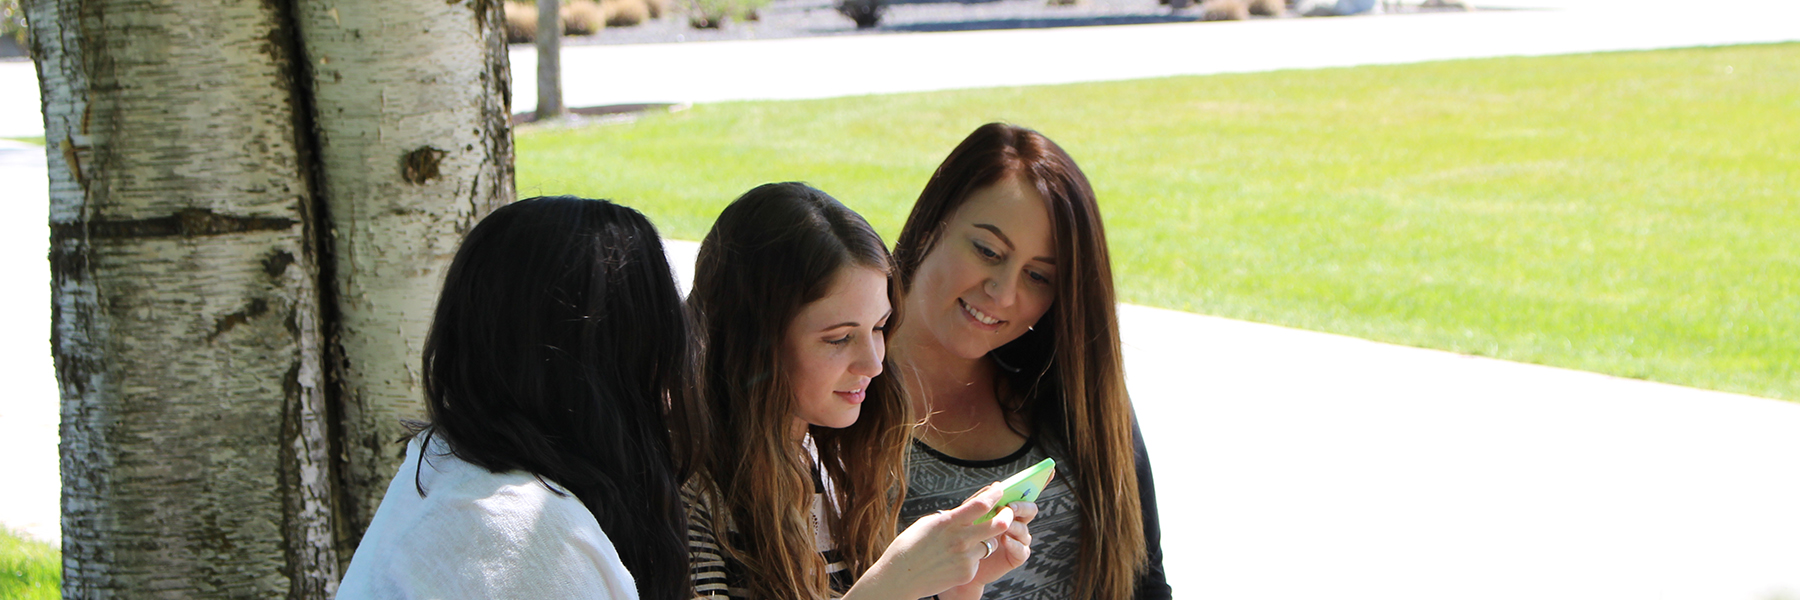 Three students sitting outside looking at a cell phone